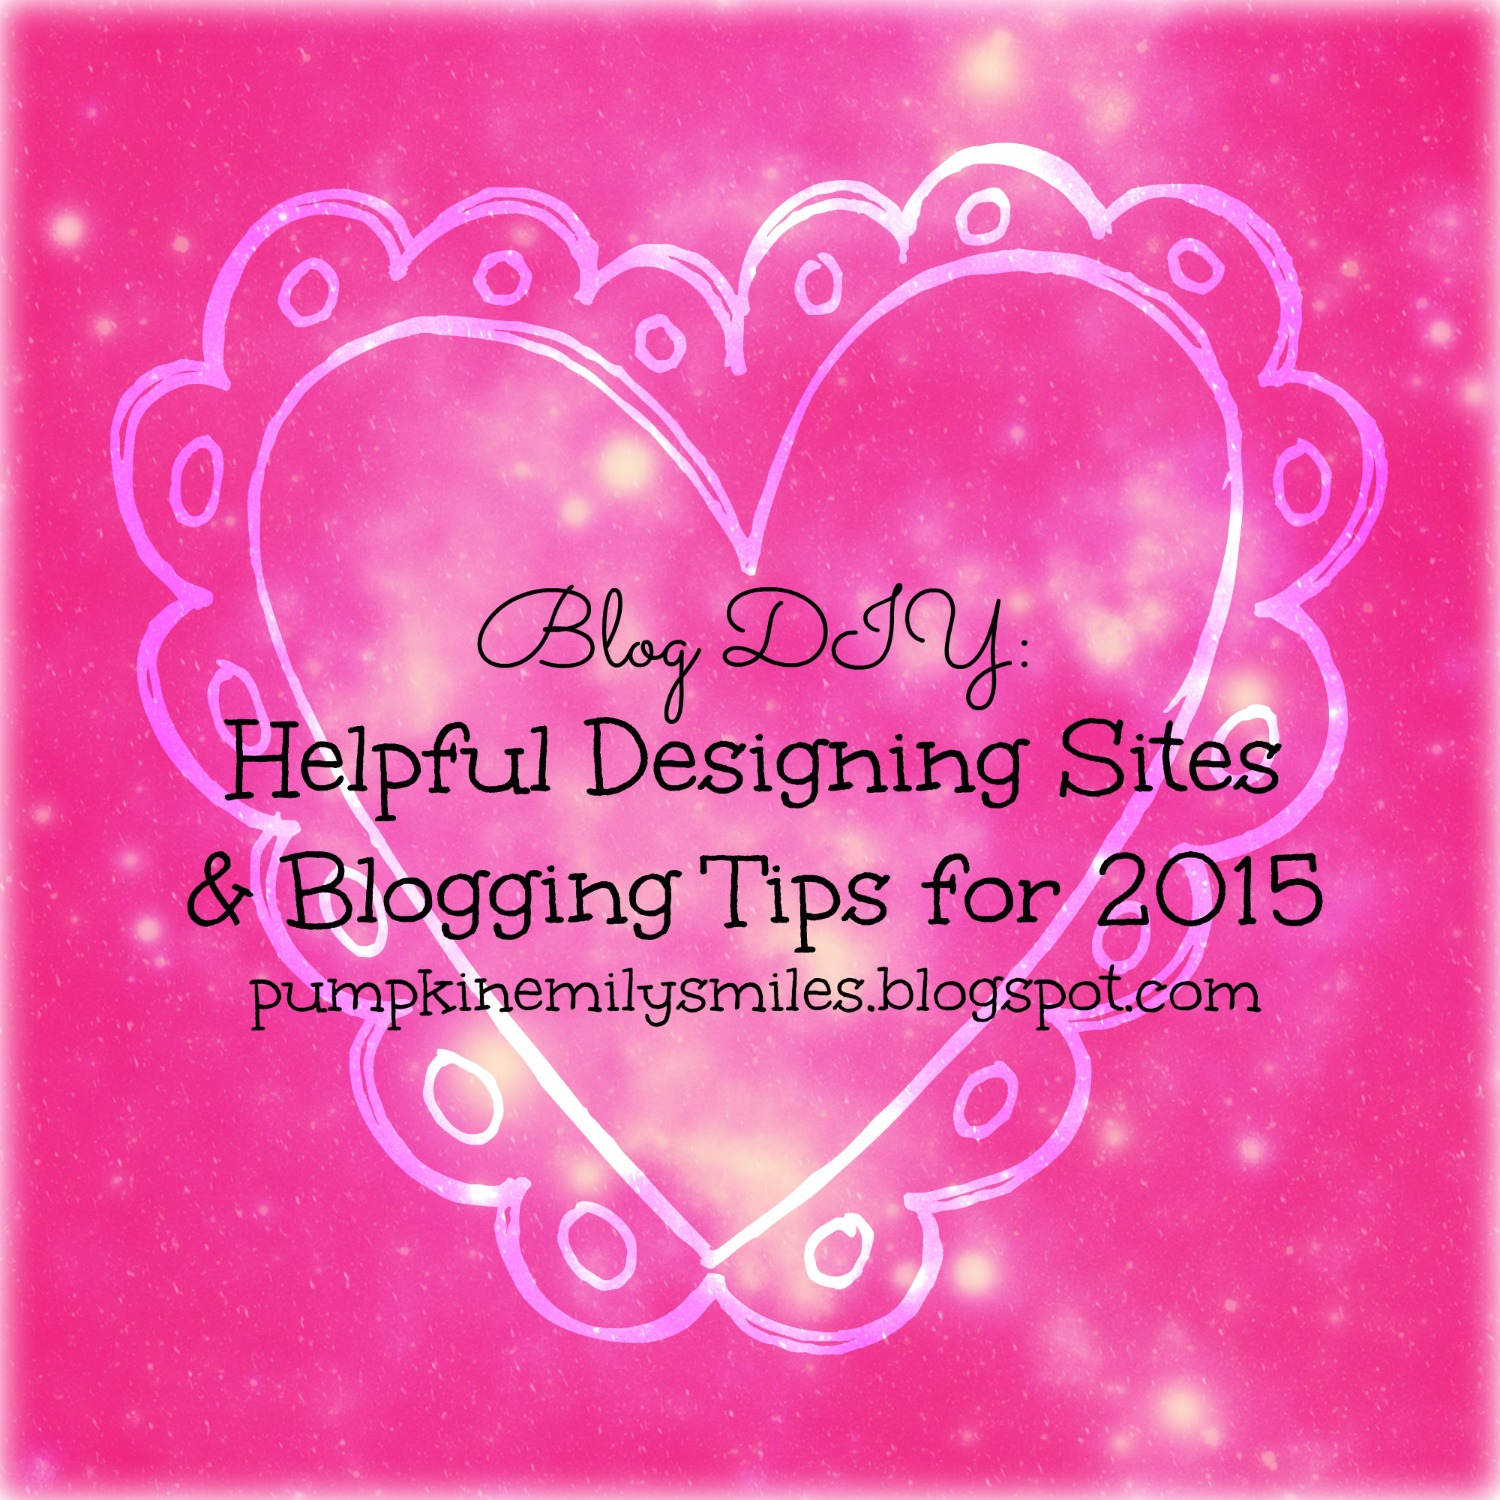 Blog DIY: Helpful Designing Sites & Blogging Tips for 2015